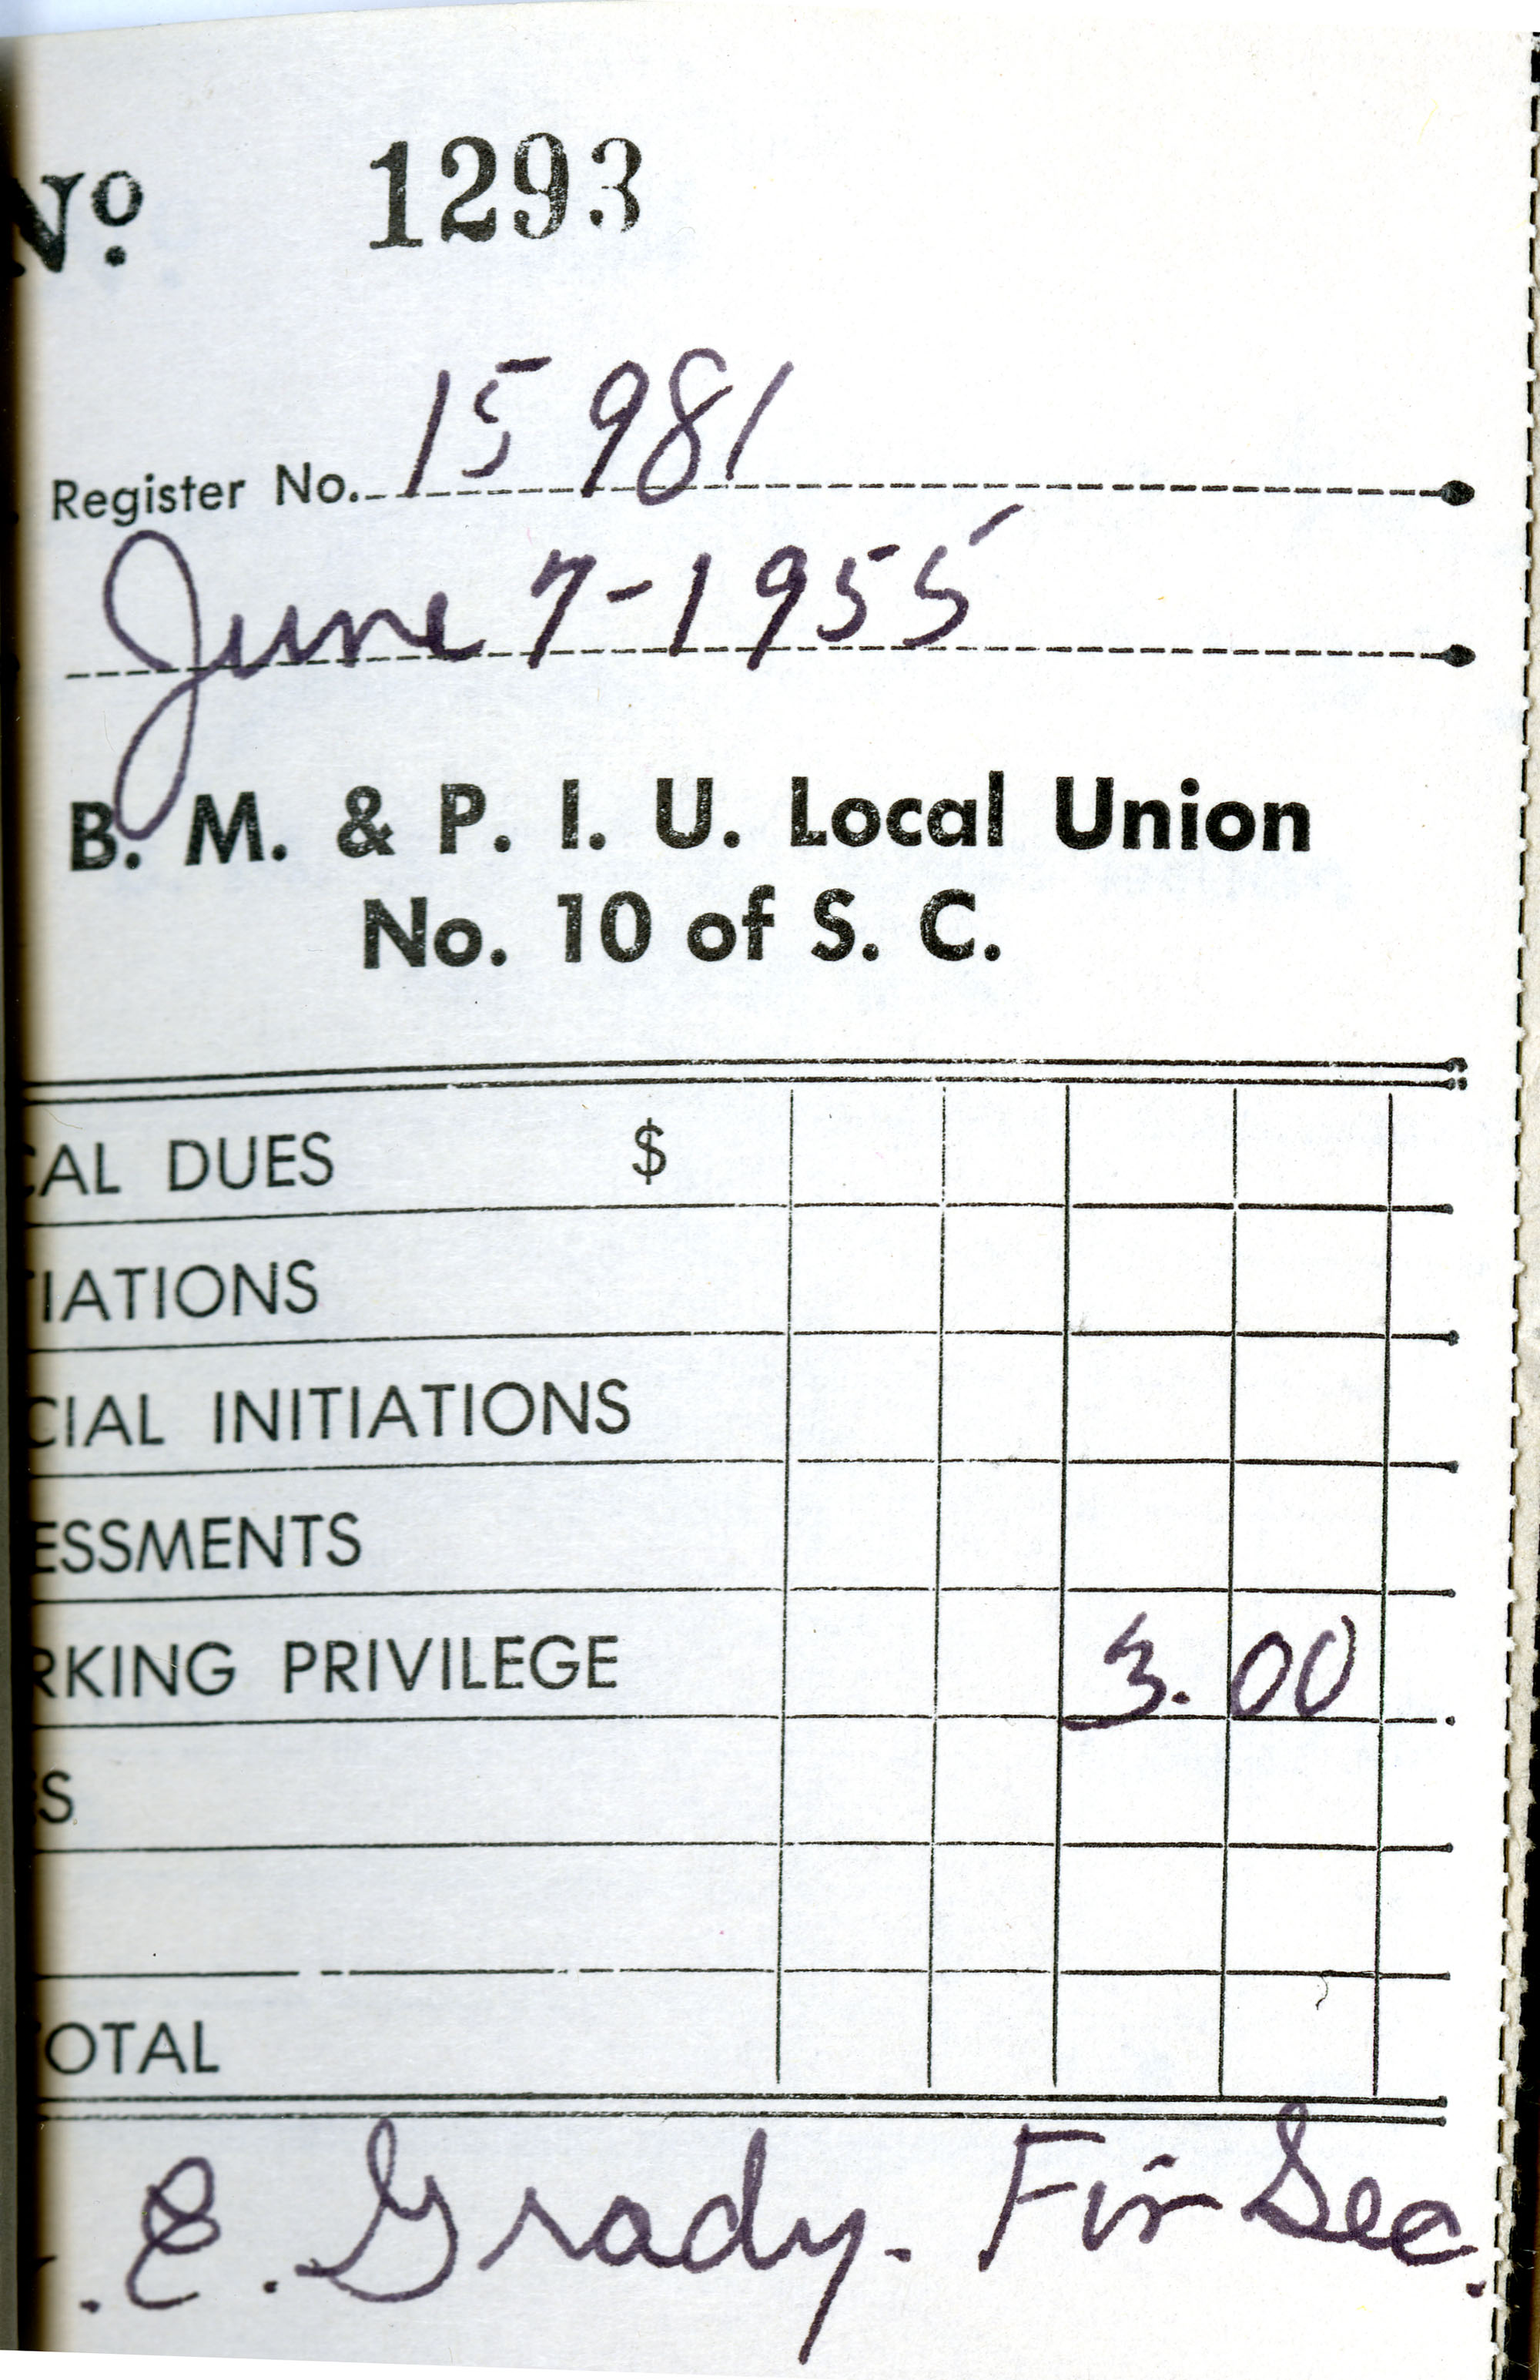 Receipt Book 4, Page 27